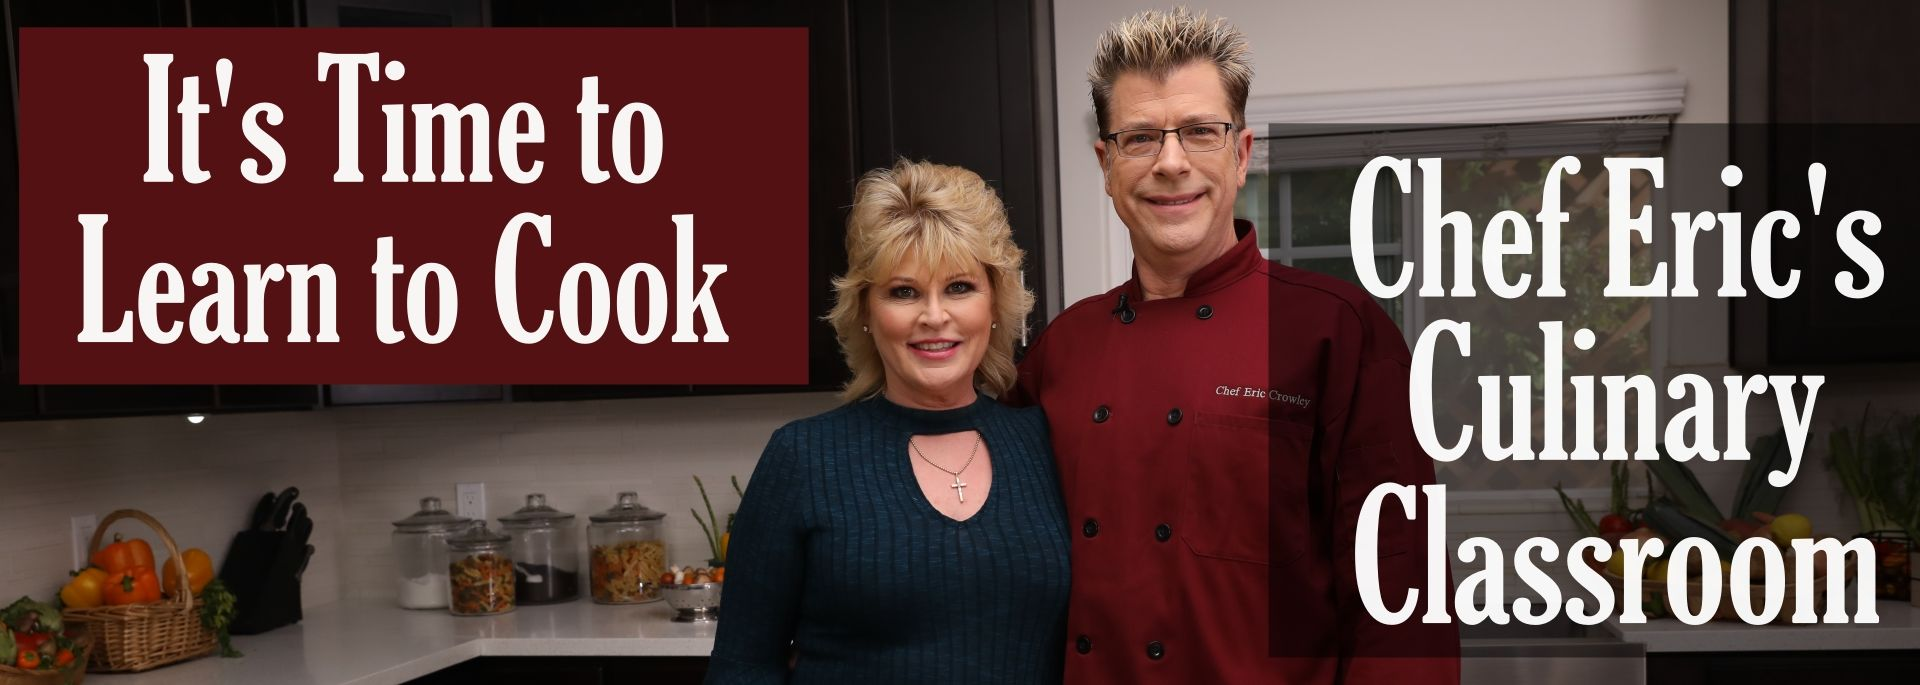 #Chef Eric's Culinary Classroom channel